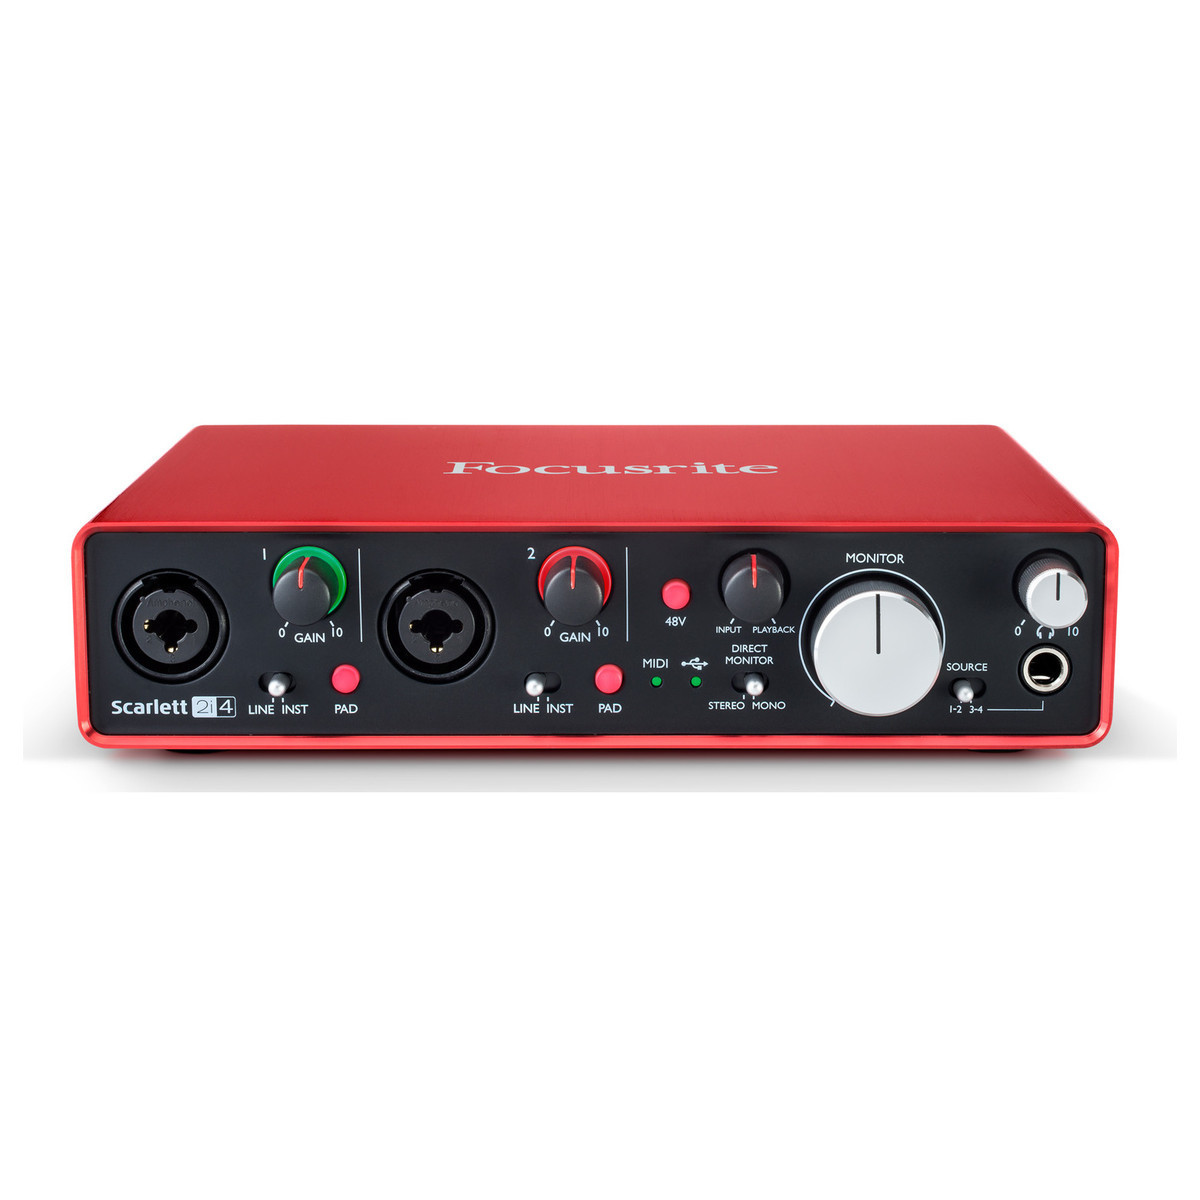 Scarlett 2i4 Focusrite - slightly used